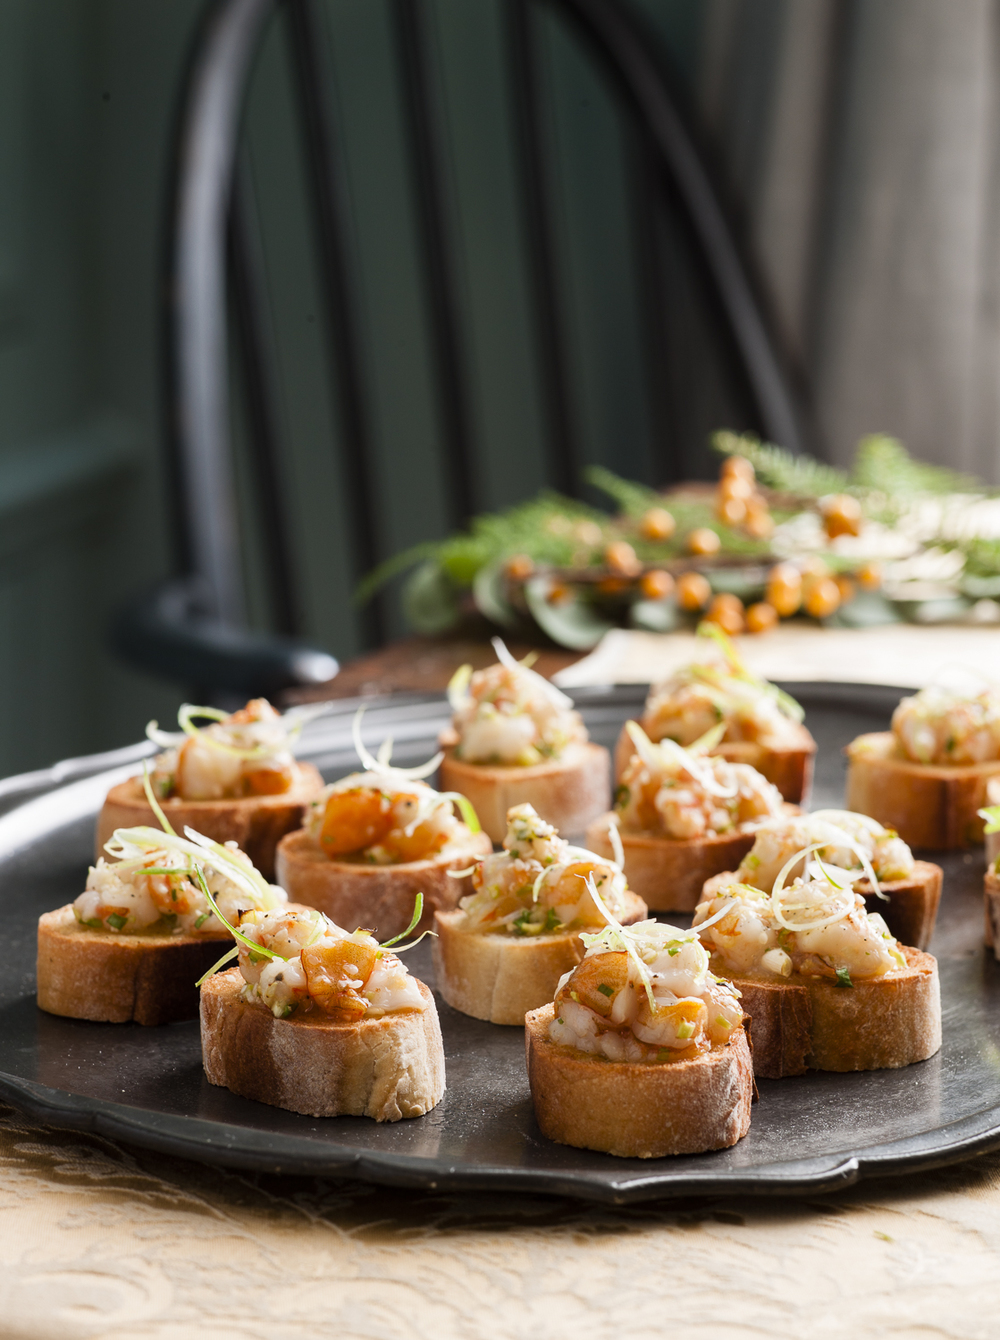 oliver_rowe_sunday_times_fod_styling_Prawn Toast-7.jpg